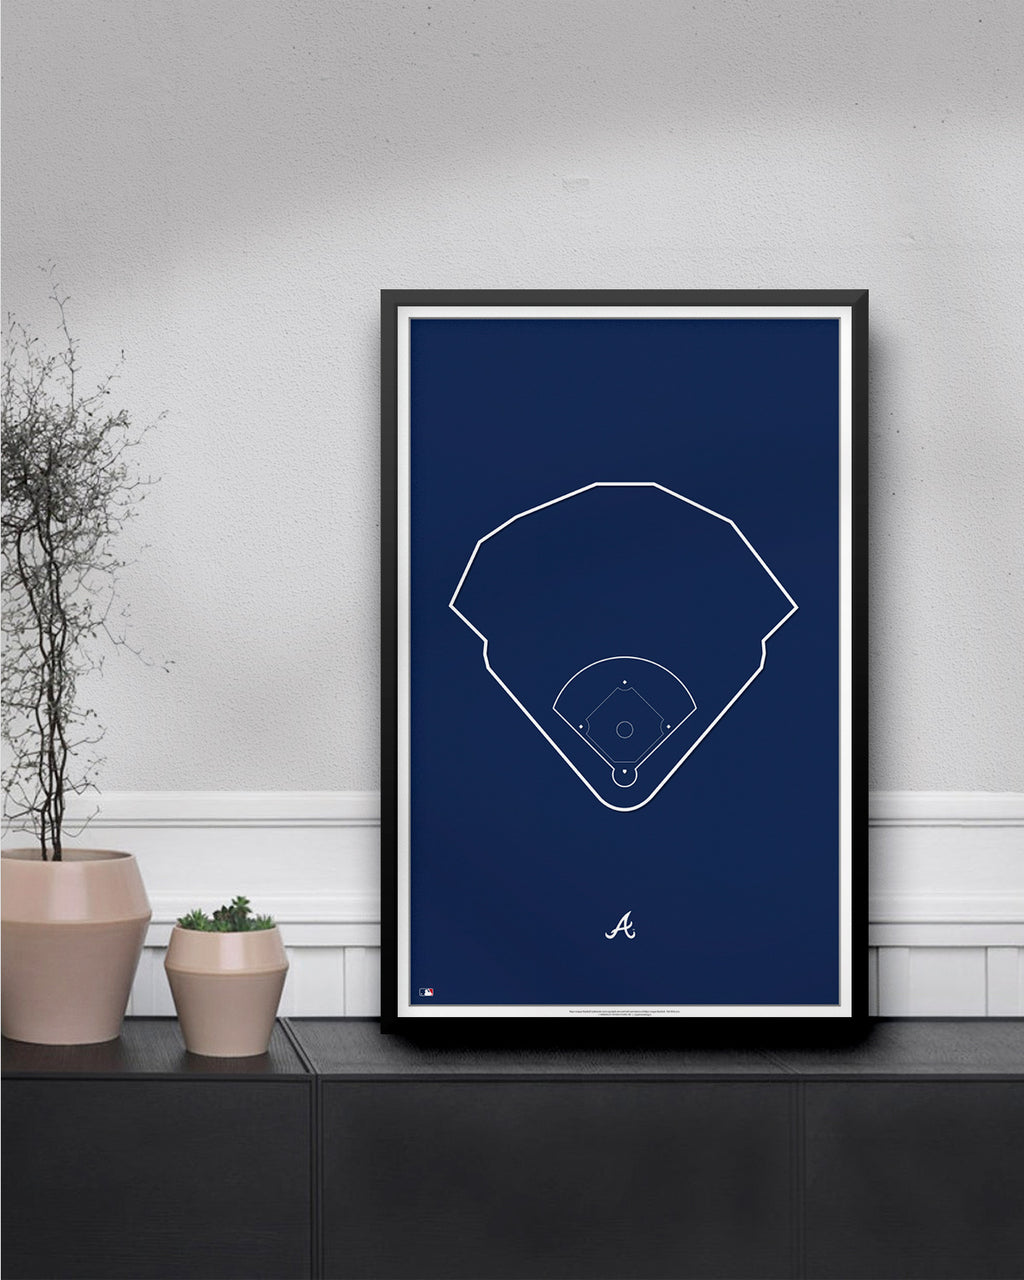 MLB Outline Ballpark - Truist Park